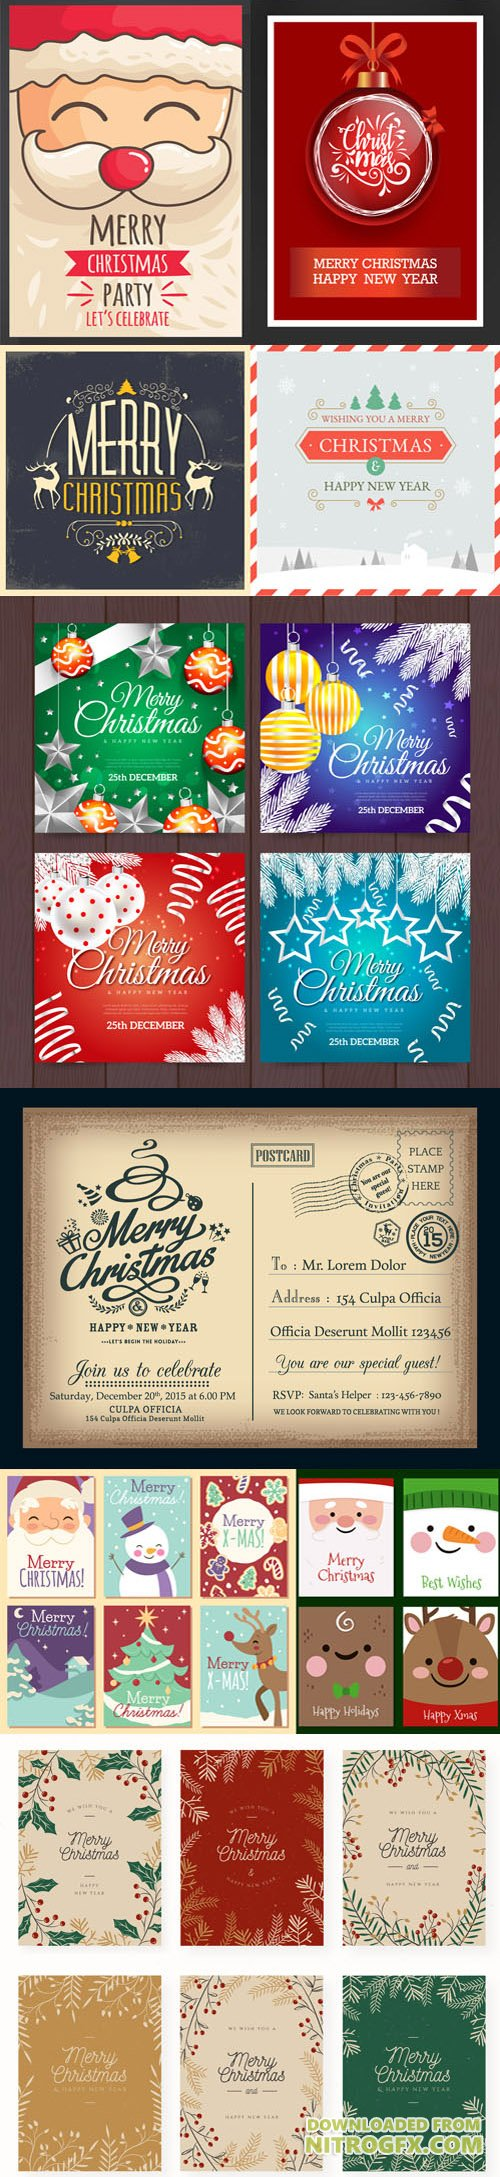 Pretty Merry Christmas Cards Collection in Vector